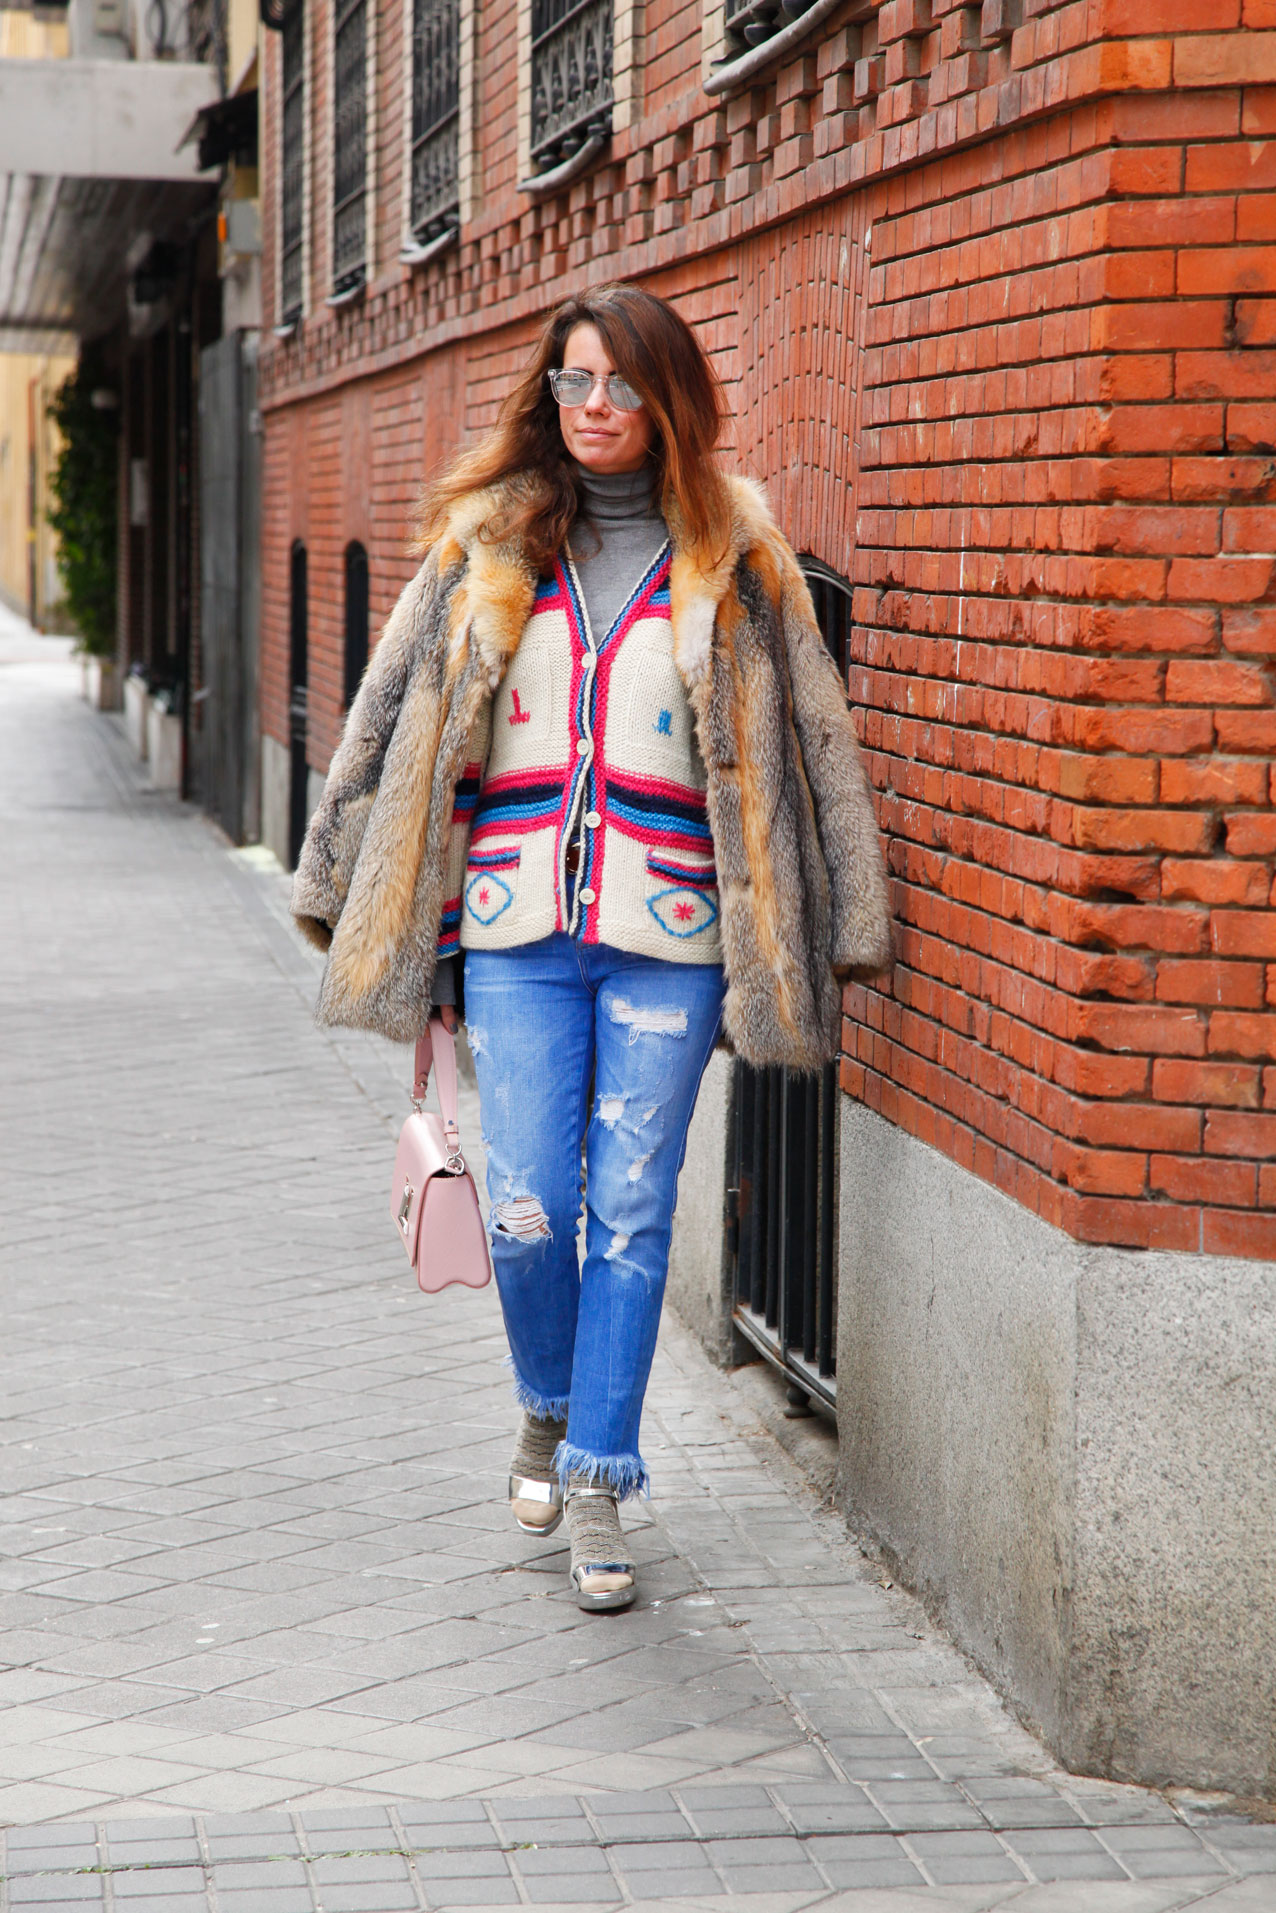 vintage_cardigan_cool_outfit_knitwear_sandals_socks_cool_lemonade-streetstyle